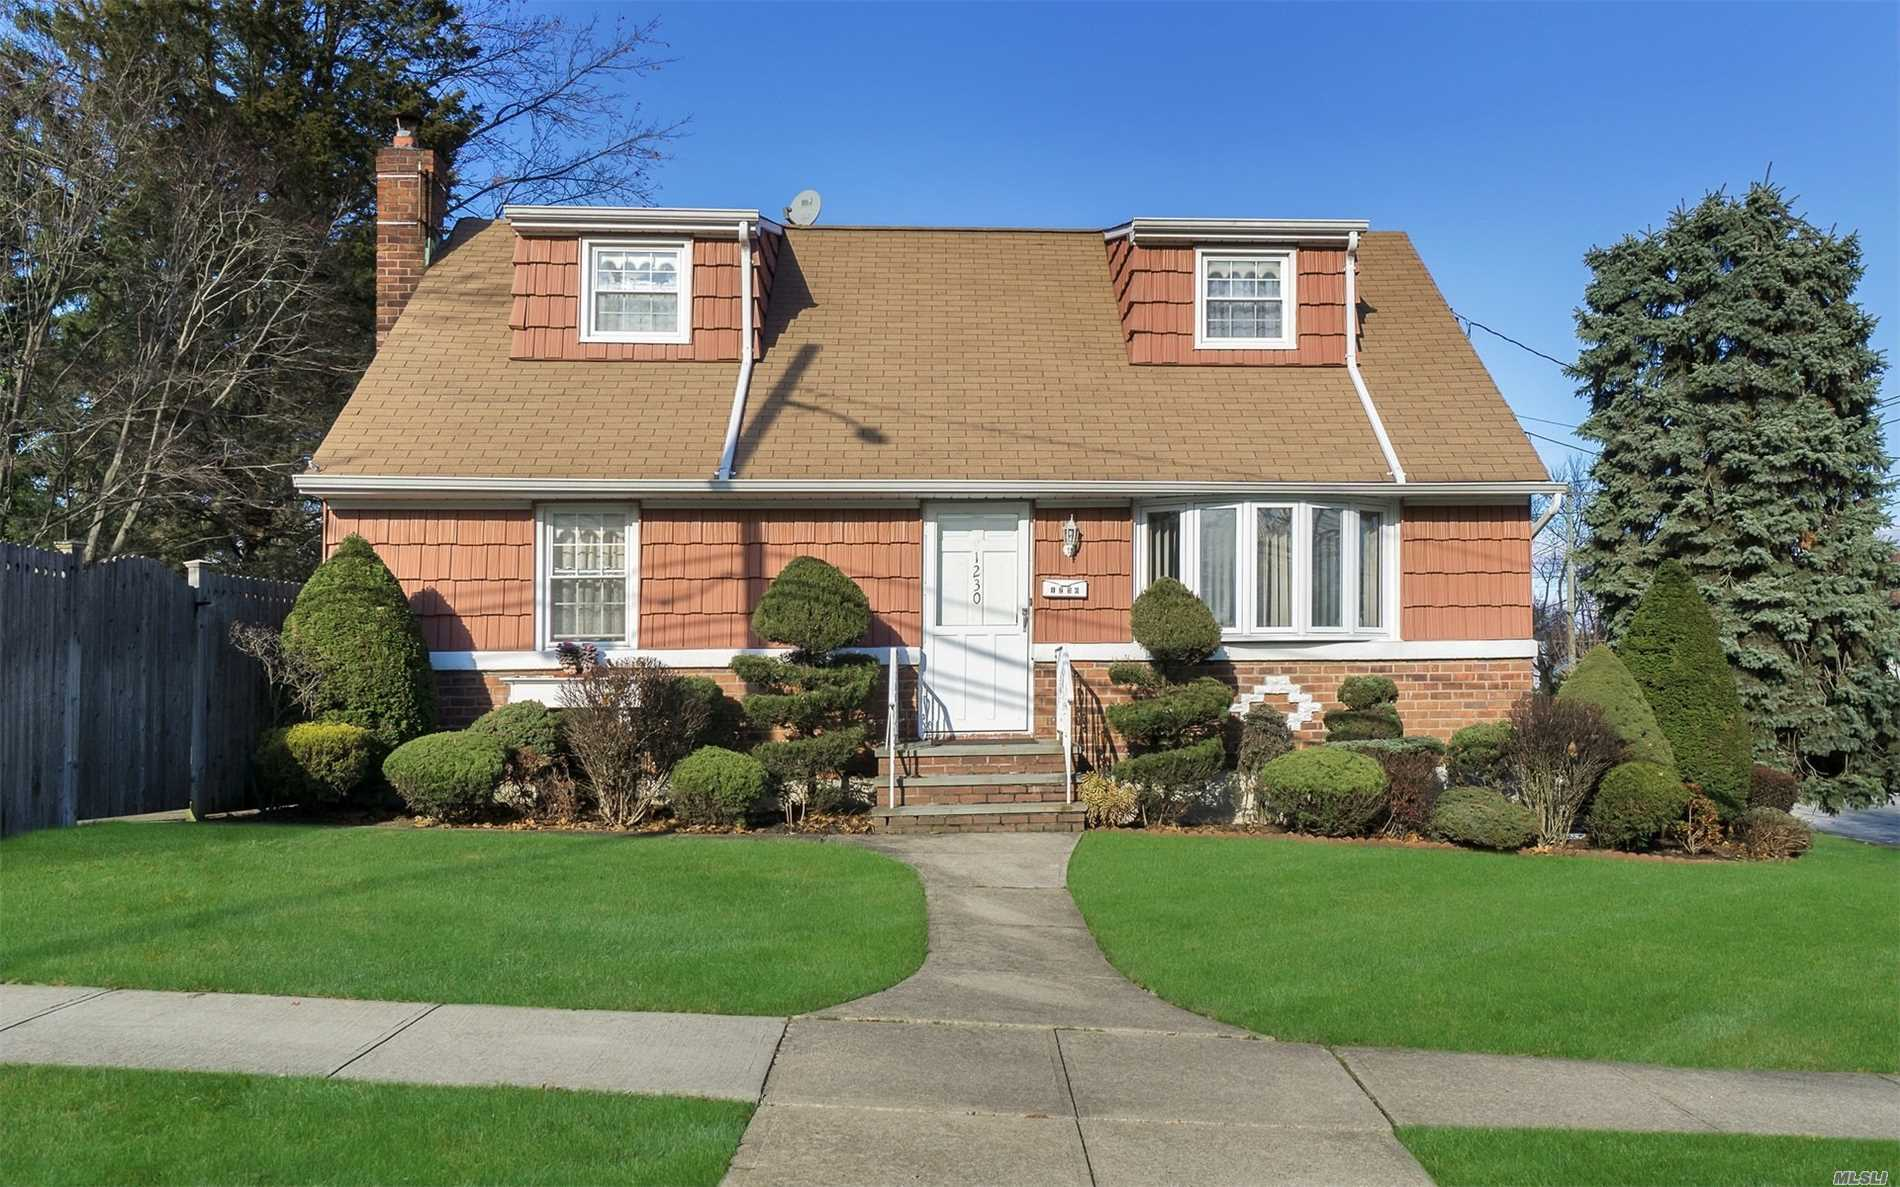 Nice, Clean, Lovingly Maintained Brick Rear Dormered Cape. 4 Bedrooms., 2 Full Baths Finished Basement With Outside Entrance. Granite/ Stainless Kitchen With Dining Area. Great Location. Minutes To Lirr, Shopping, Park & Track! Lots Of Closets. Nicely Landscaped. Fenced Yard